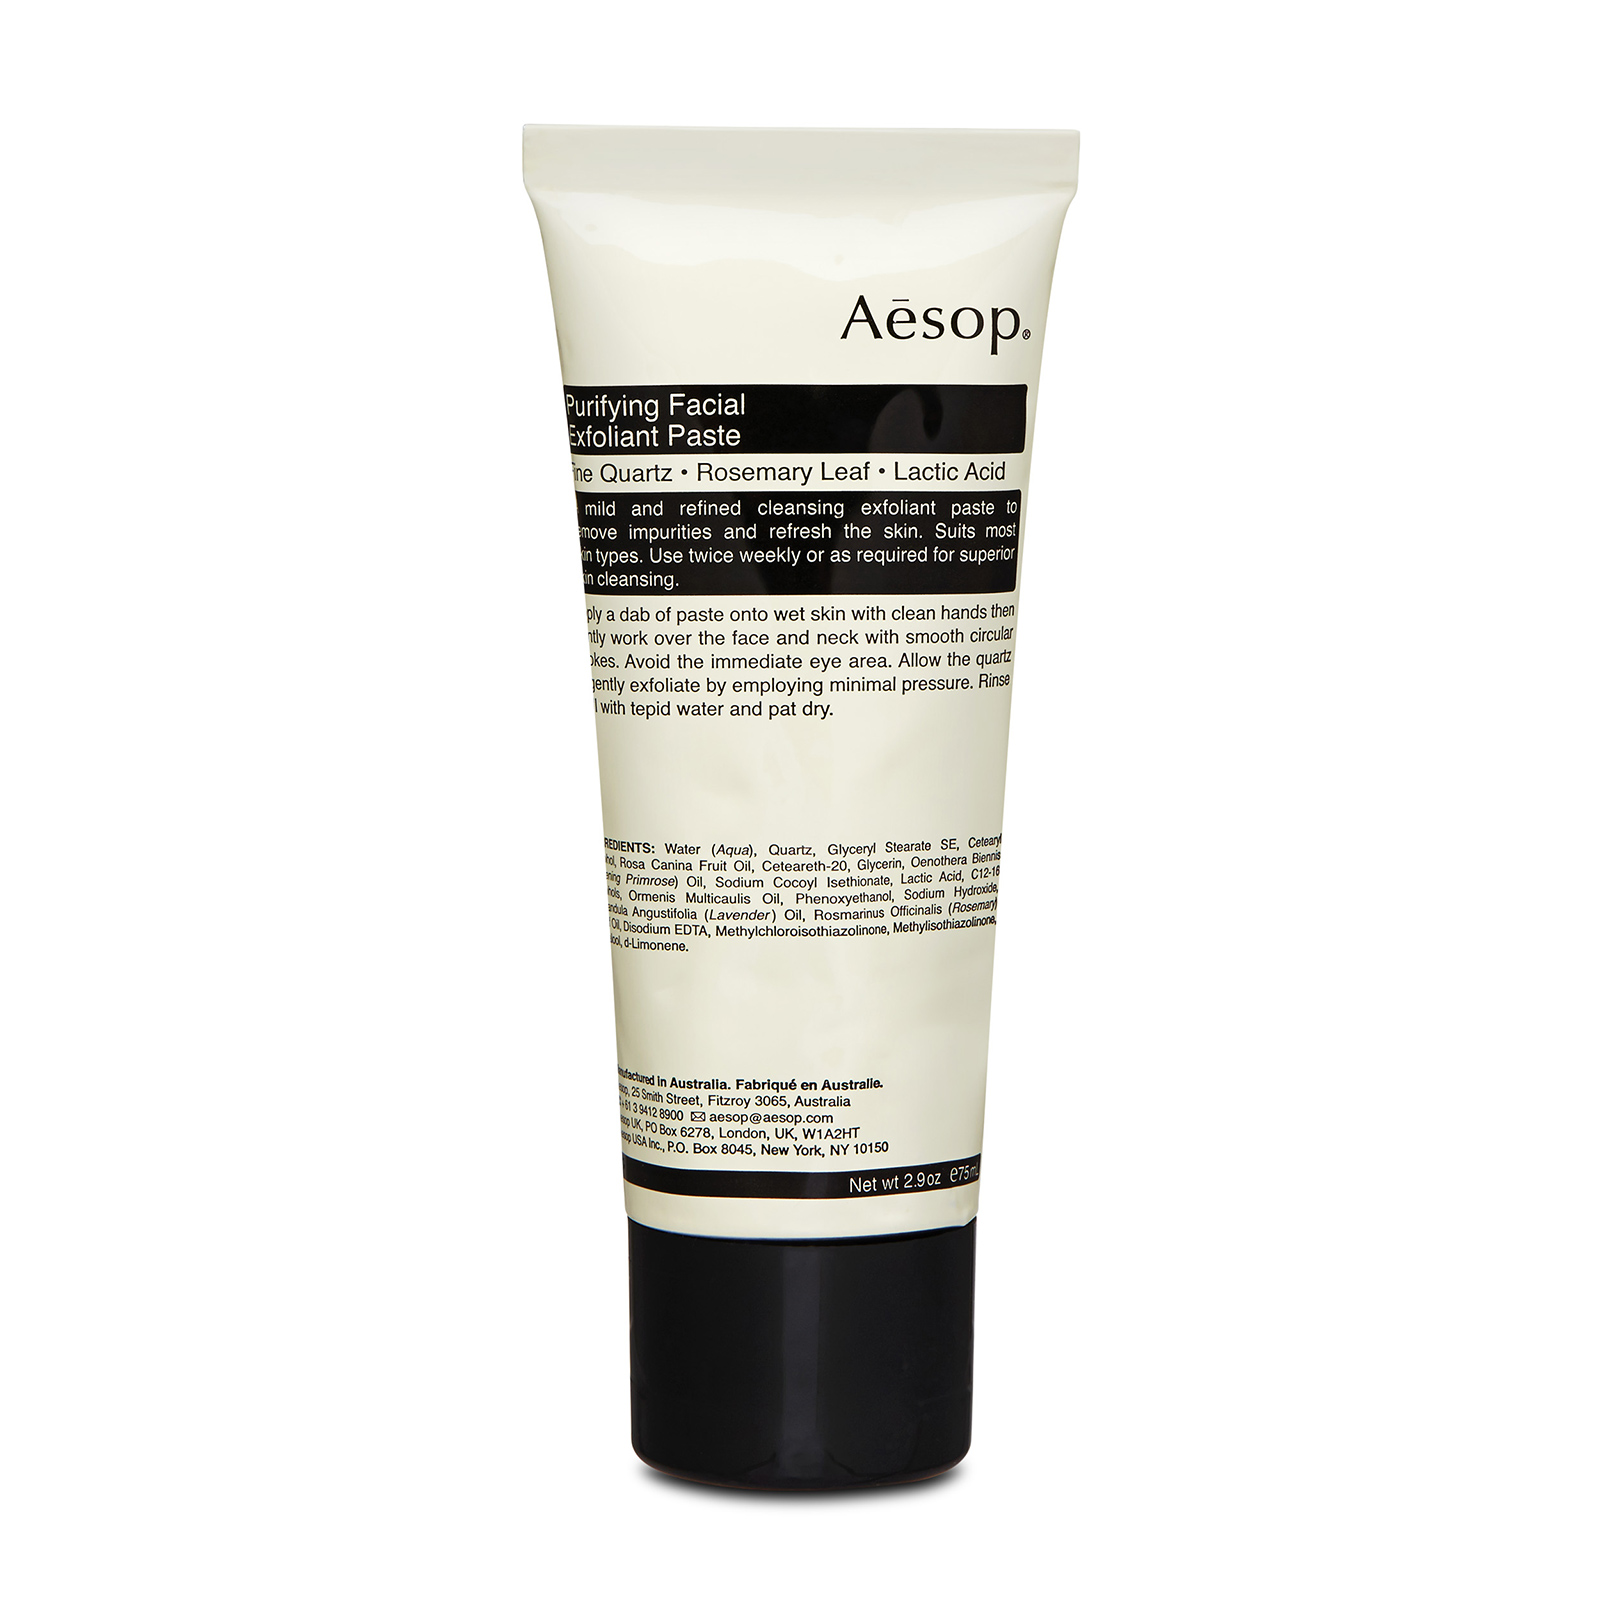 Aesop Purifying Facial Exfoliant Paste has the following features: Fine river-bed Quartz contained in a cream base sloughs away tired surface cells.Lactic Acid offers a mild chemical exfoliation to leave skin immaculately cleansed, soft and polished.